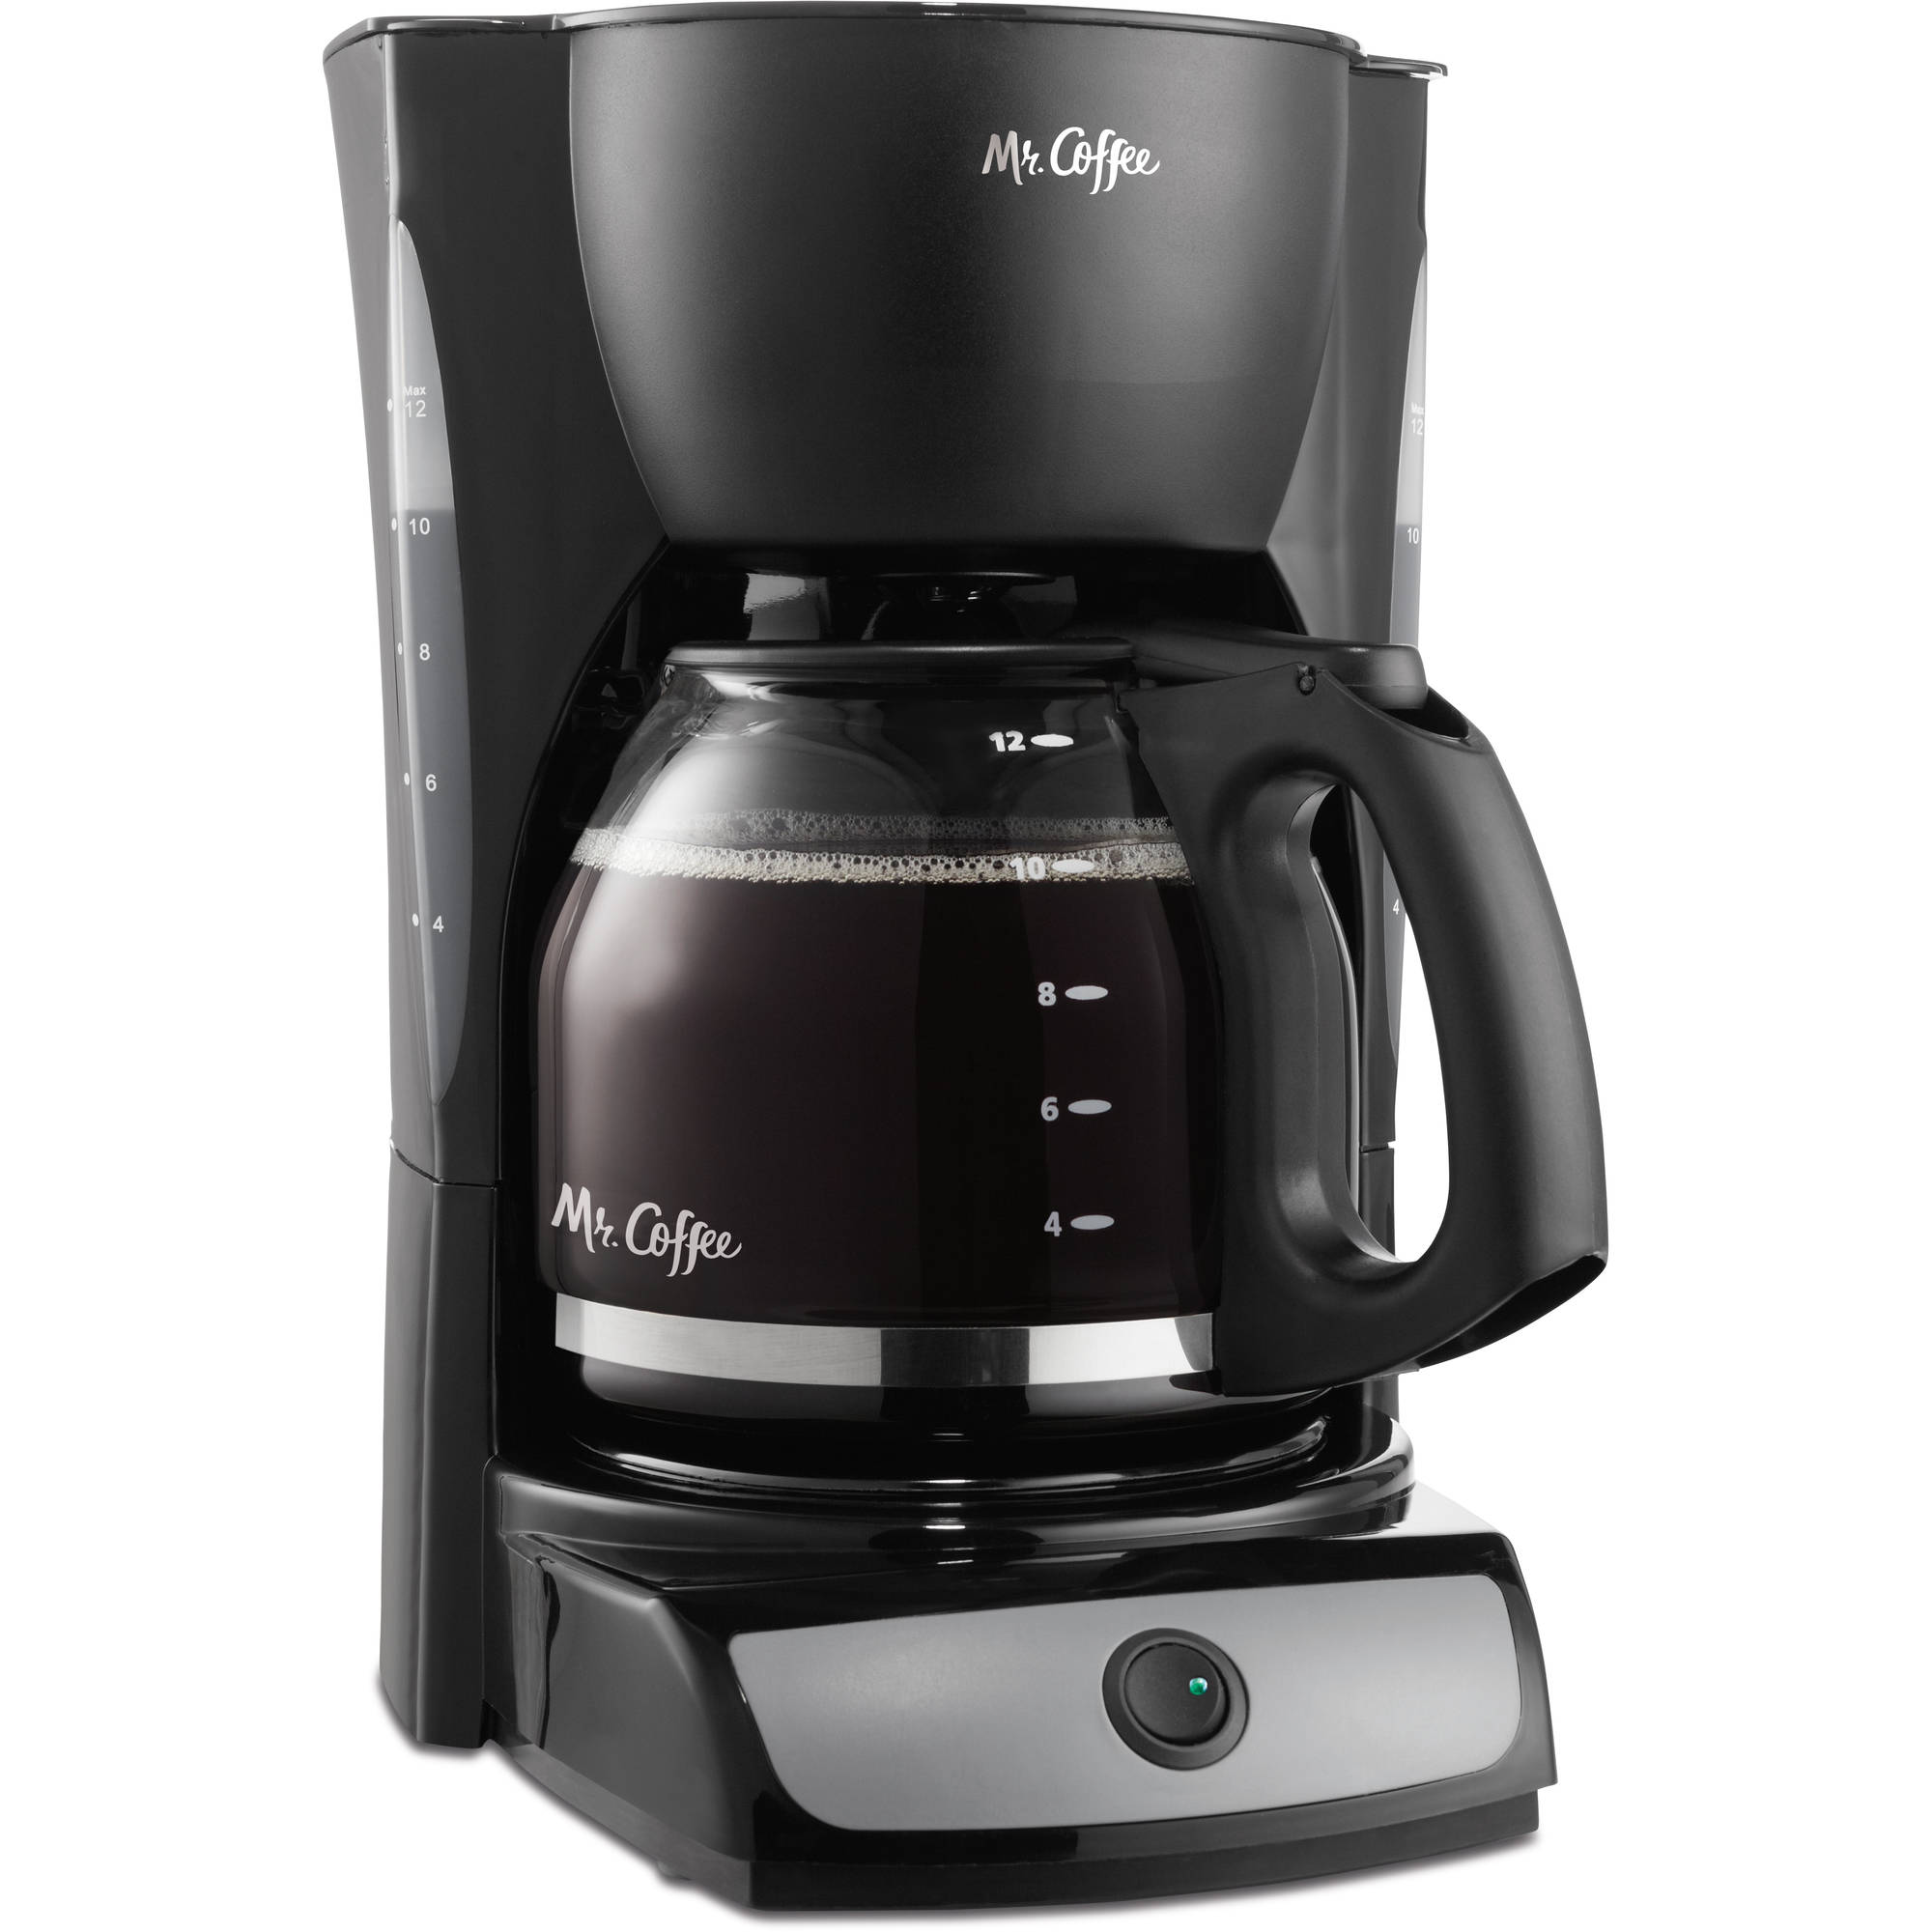 Mr. Coffee 12-Cup Switch Coffee Maker, CG12